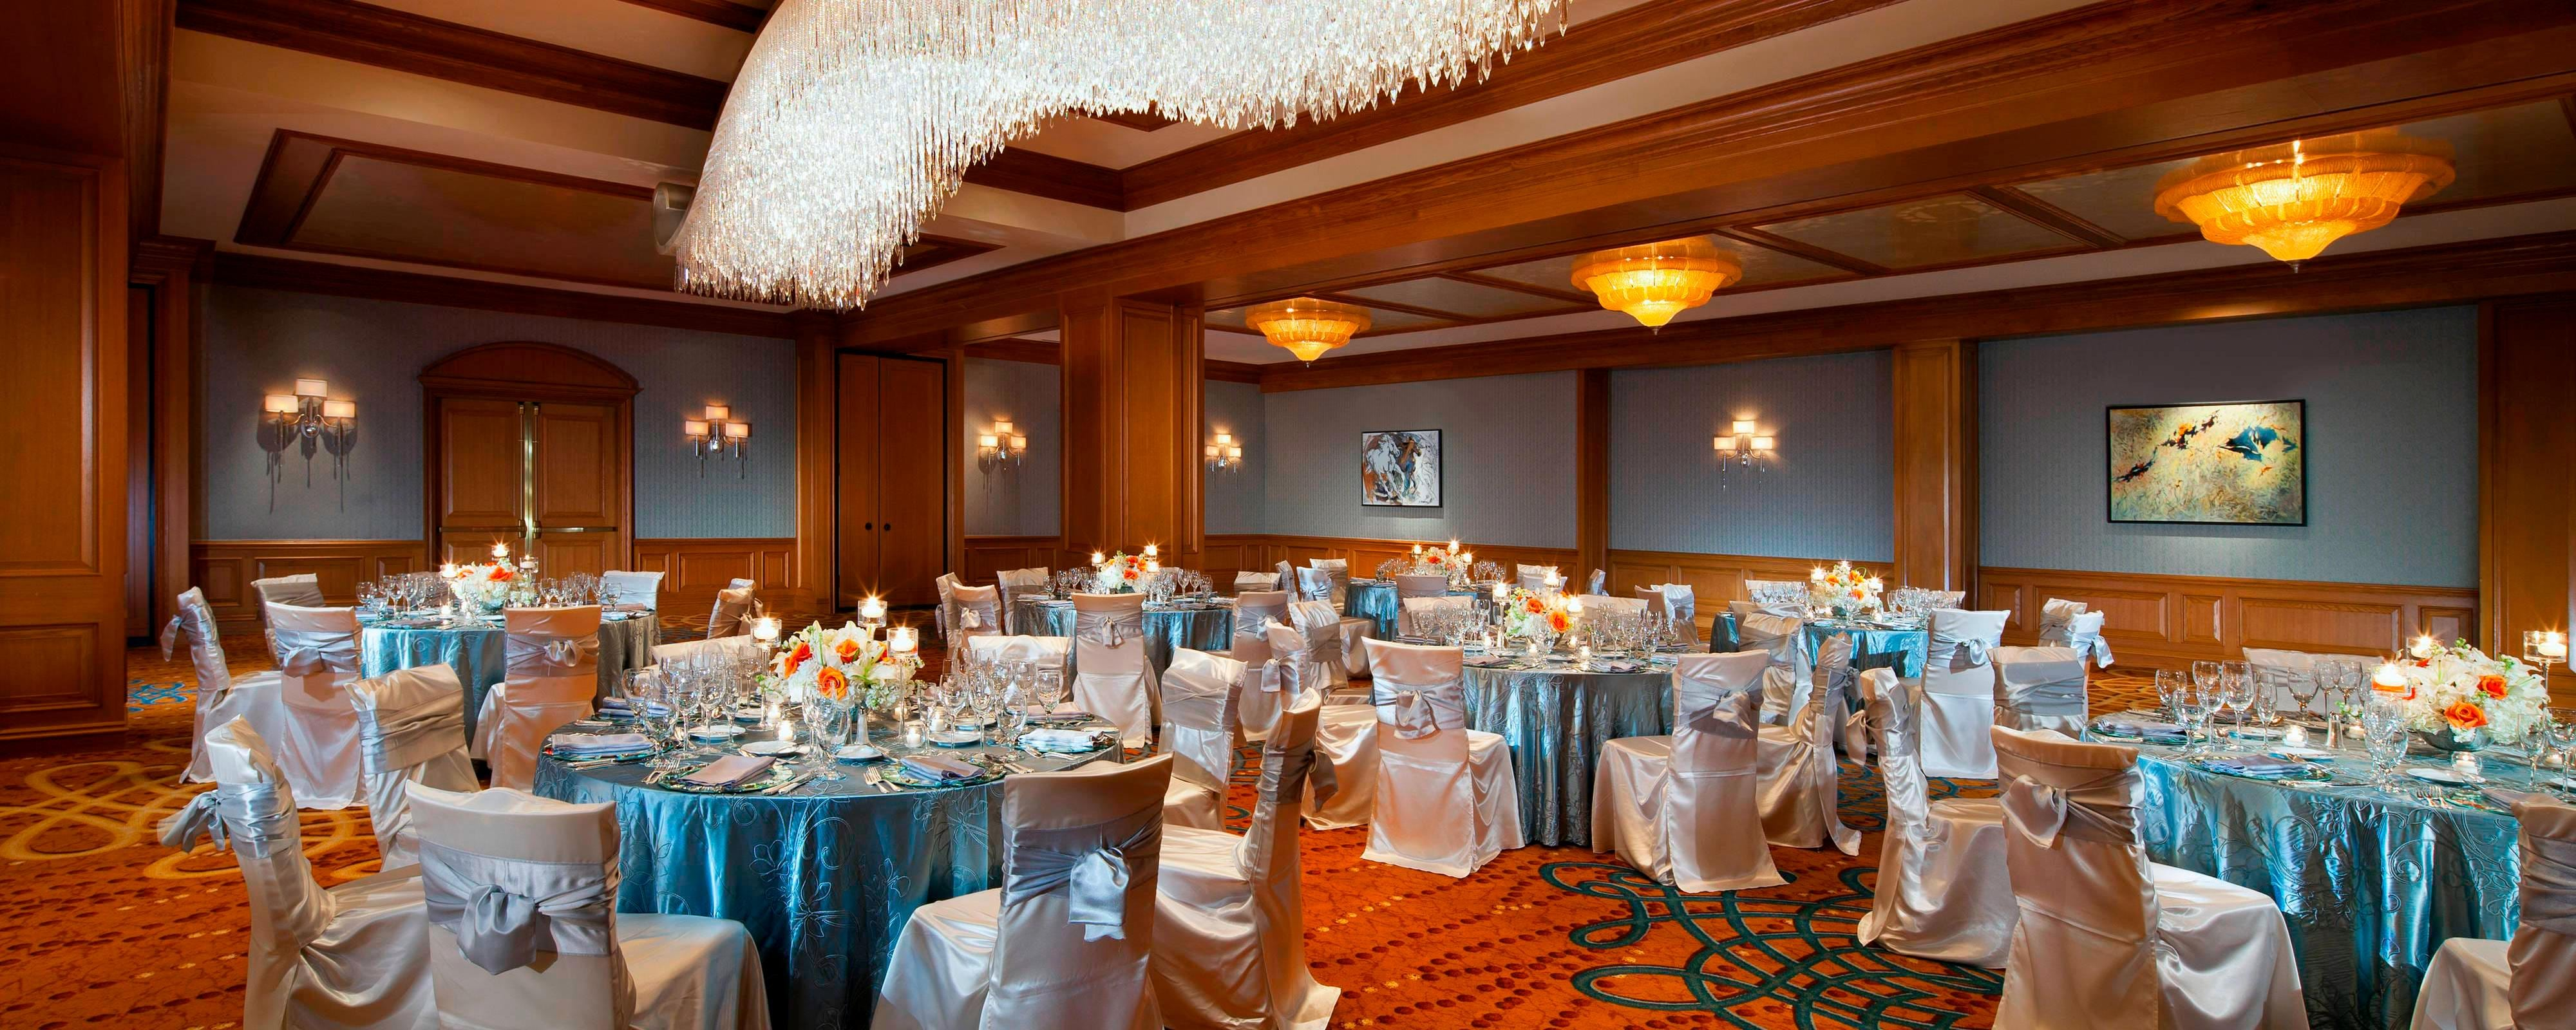 Wedding Reception Venues In Houston Tx The St Regis Houston